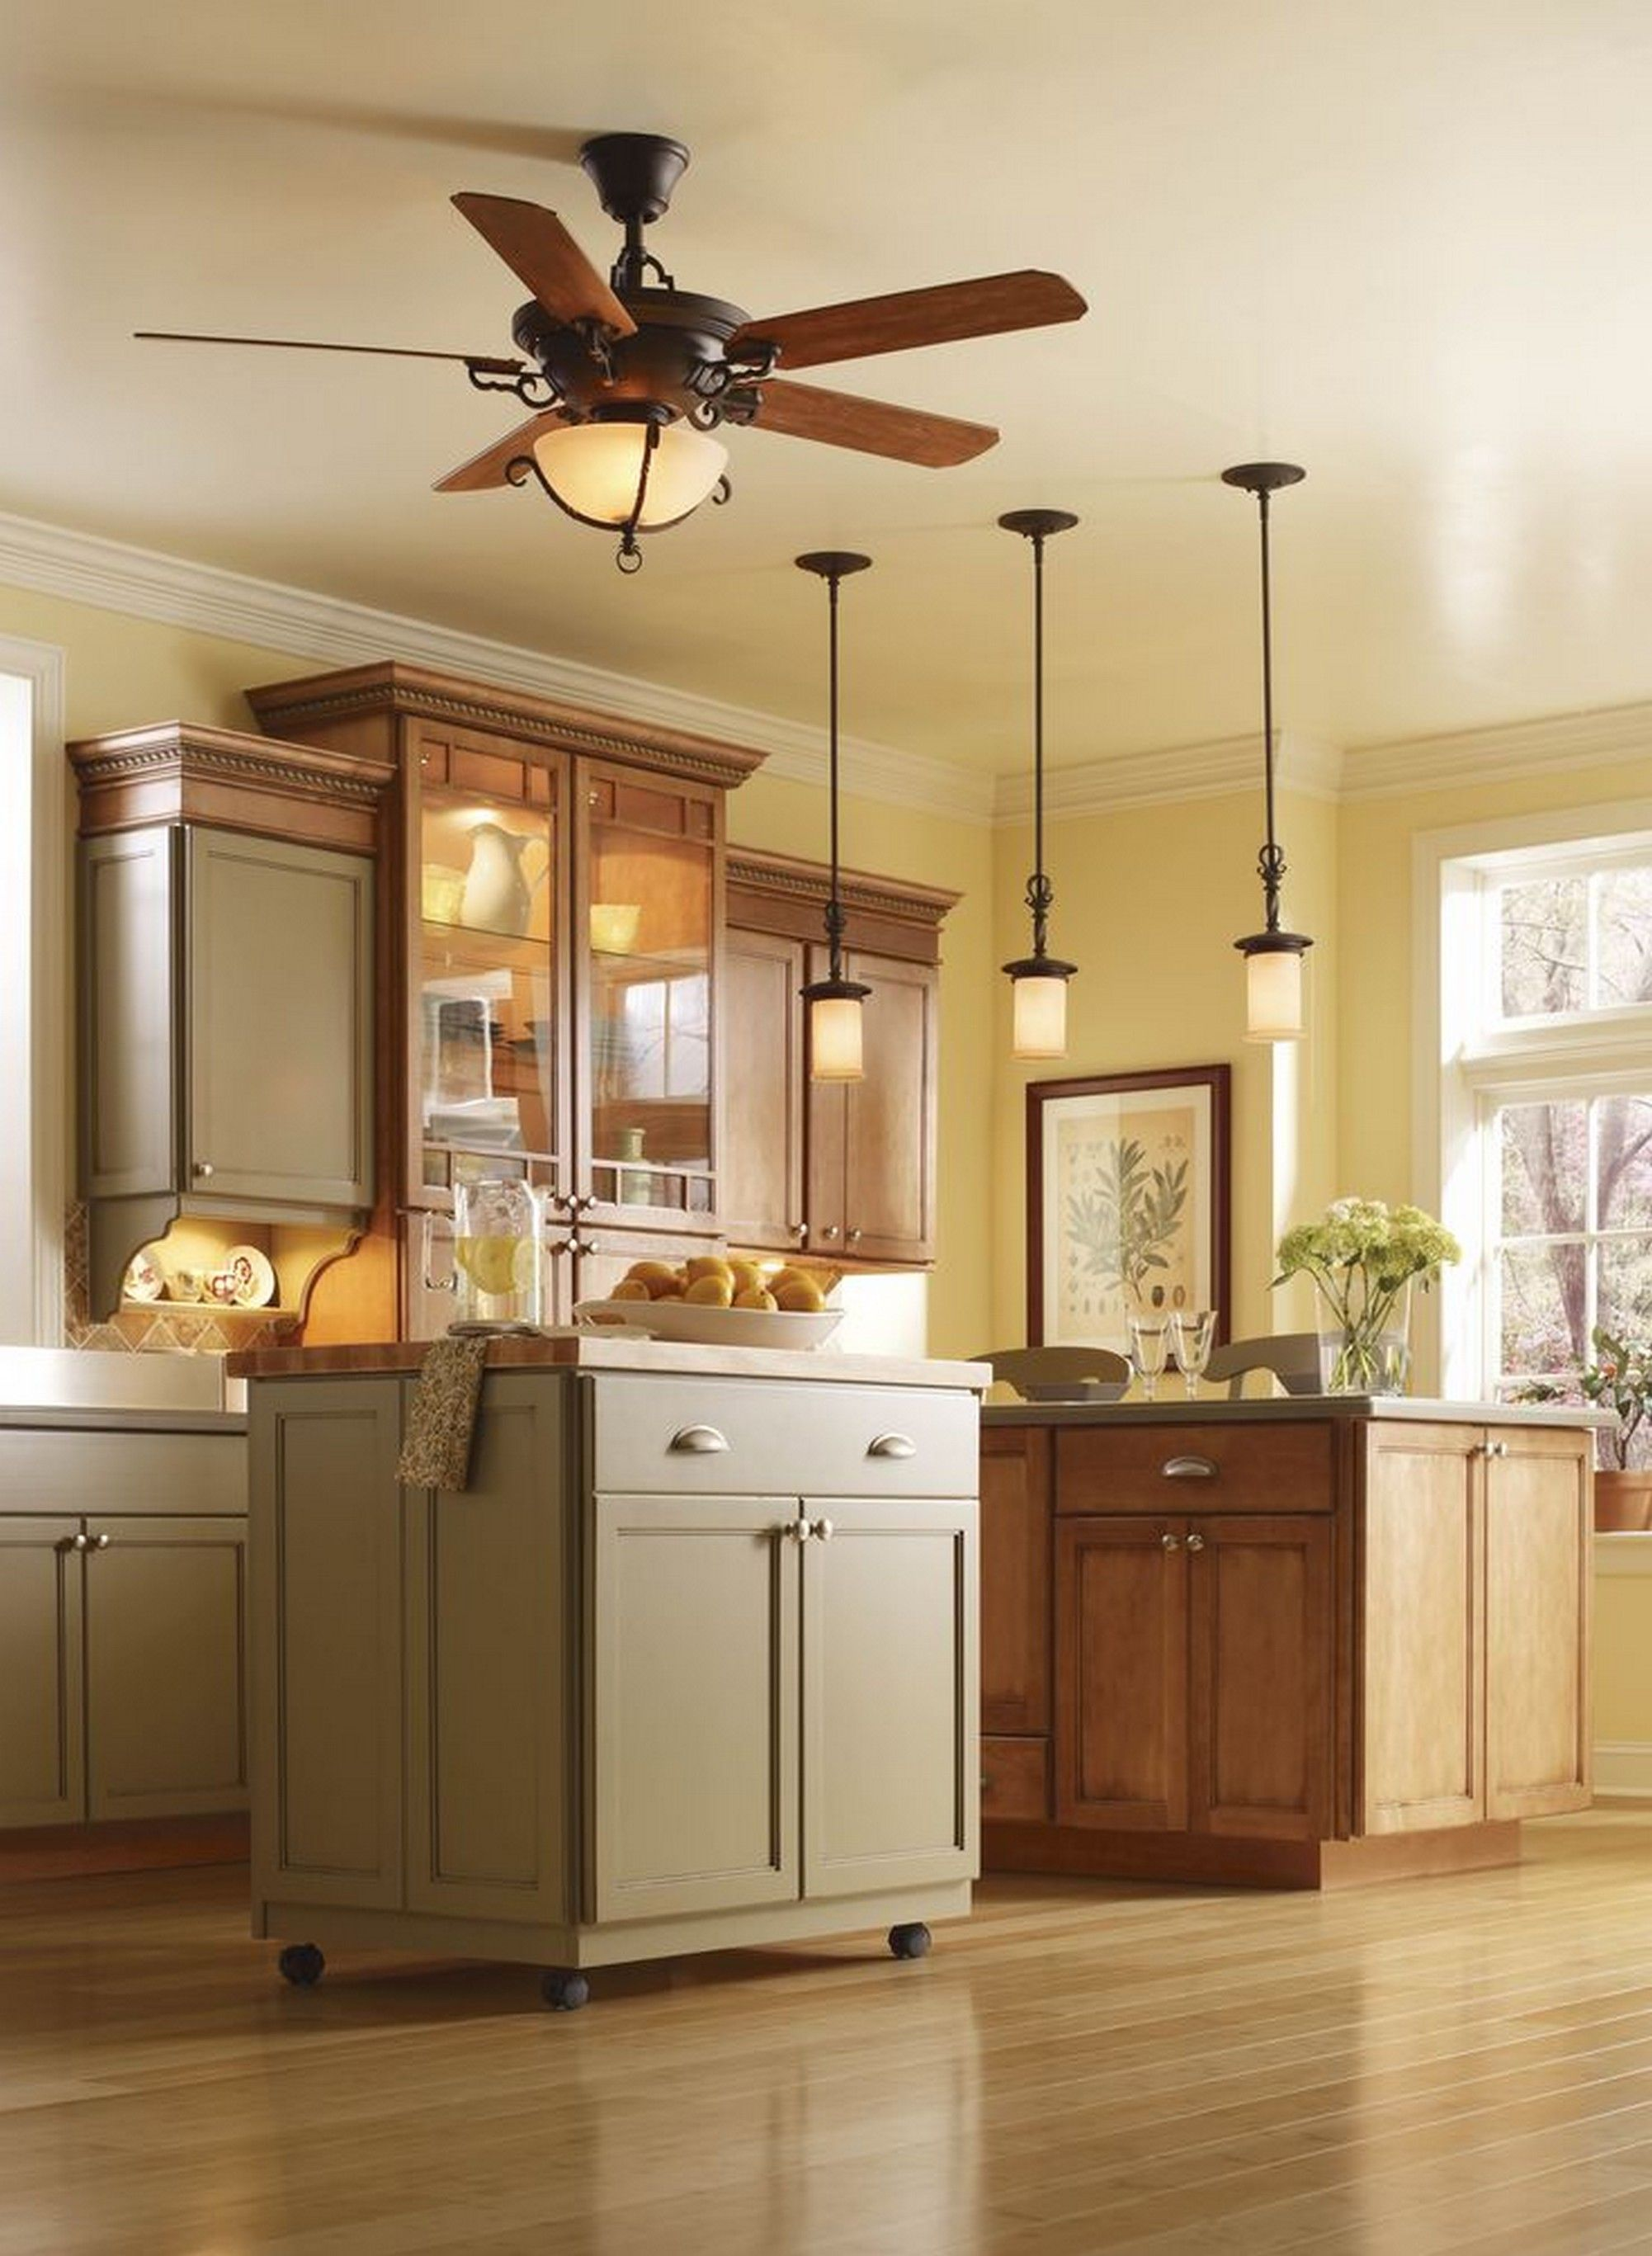 Ceiling Lights Kitchen Small Island Under Awesome Kitchen Ceiling Lights With Wooden